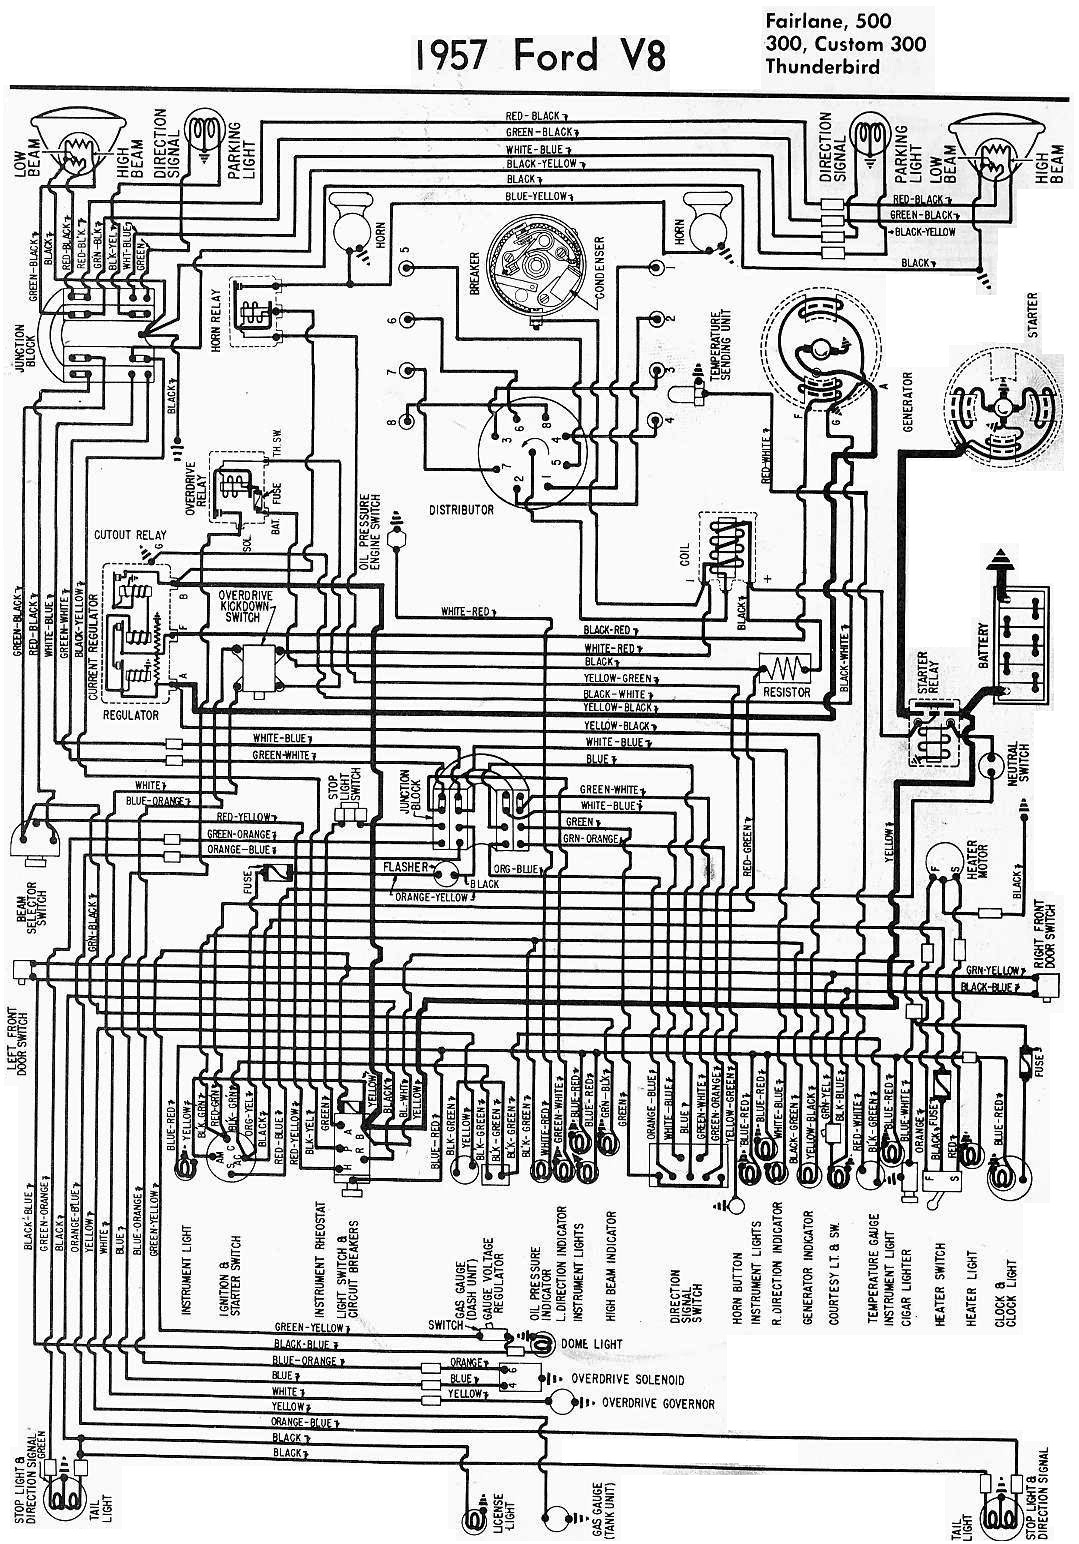 1964 Ford Galaxie 500 Wiring Diagram Explained Wiring Diagrams 1964 Falcon  Wiring-Diagram 1964 Ford Galaxie Ignition Switch Diagram